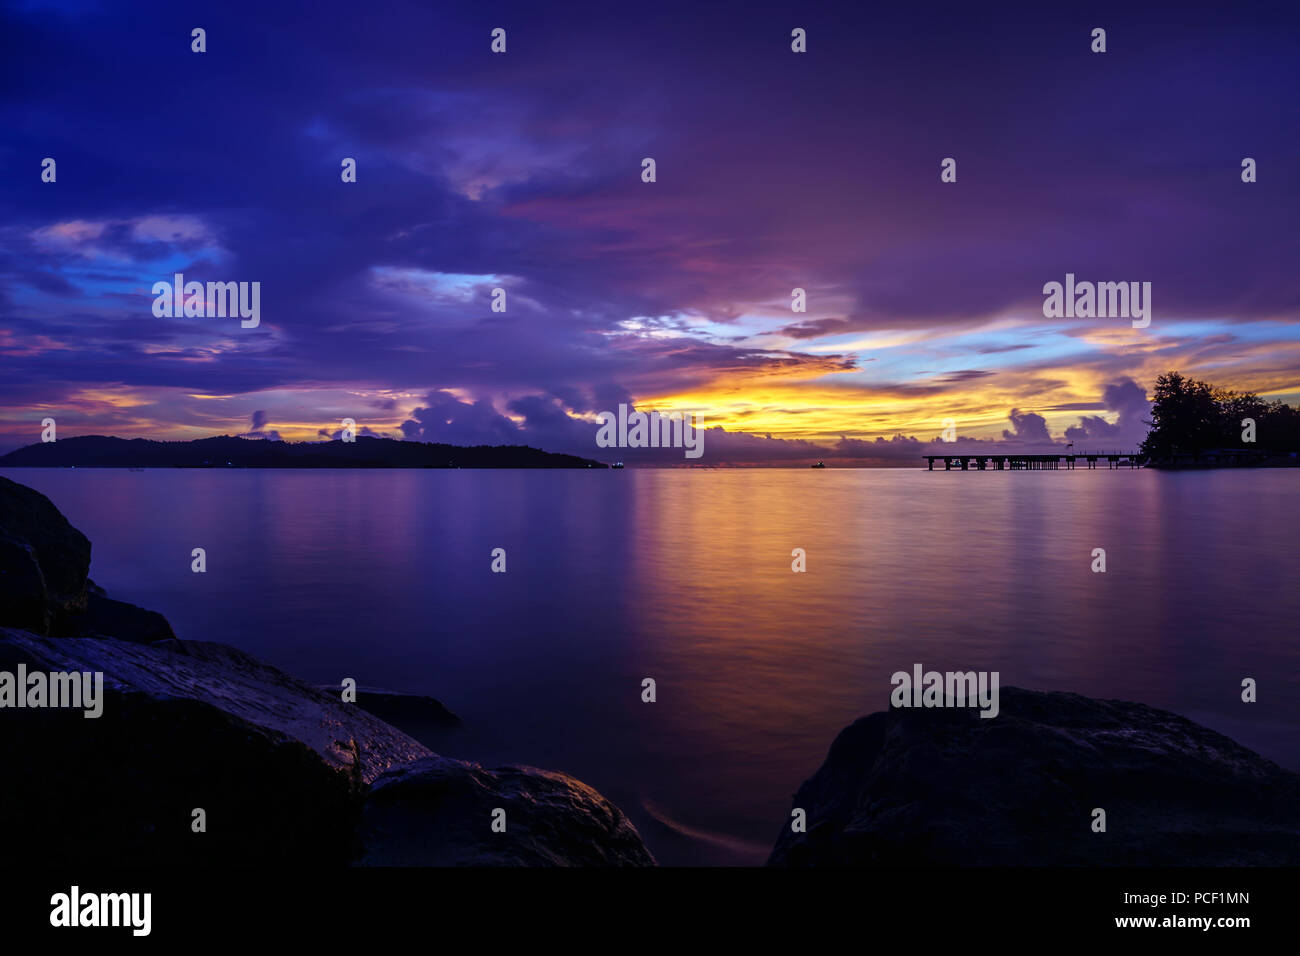 Beautiful sunset color in Kota Kinabalu Sabah. KK is known as the best place to see beautiful sunset in the world. - Stock Image